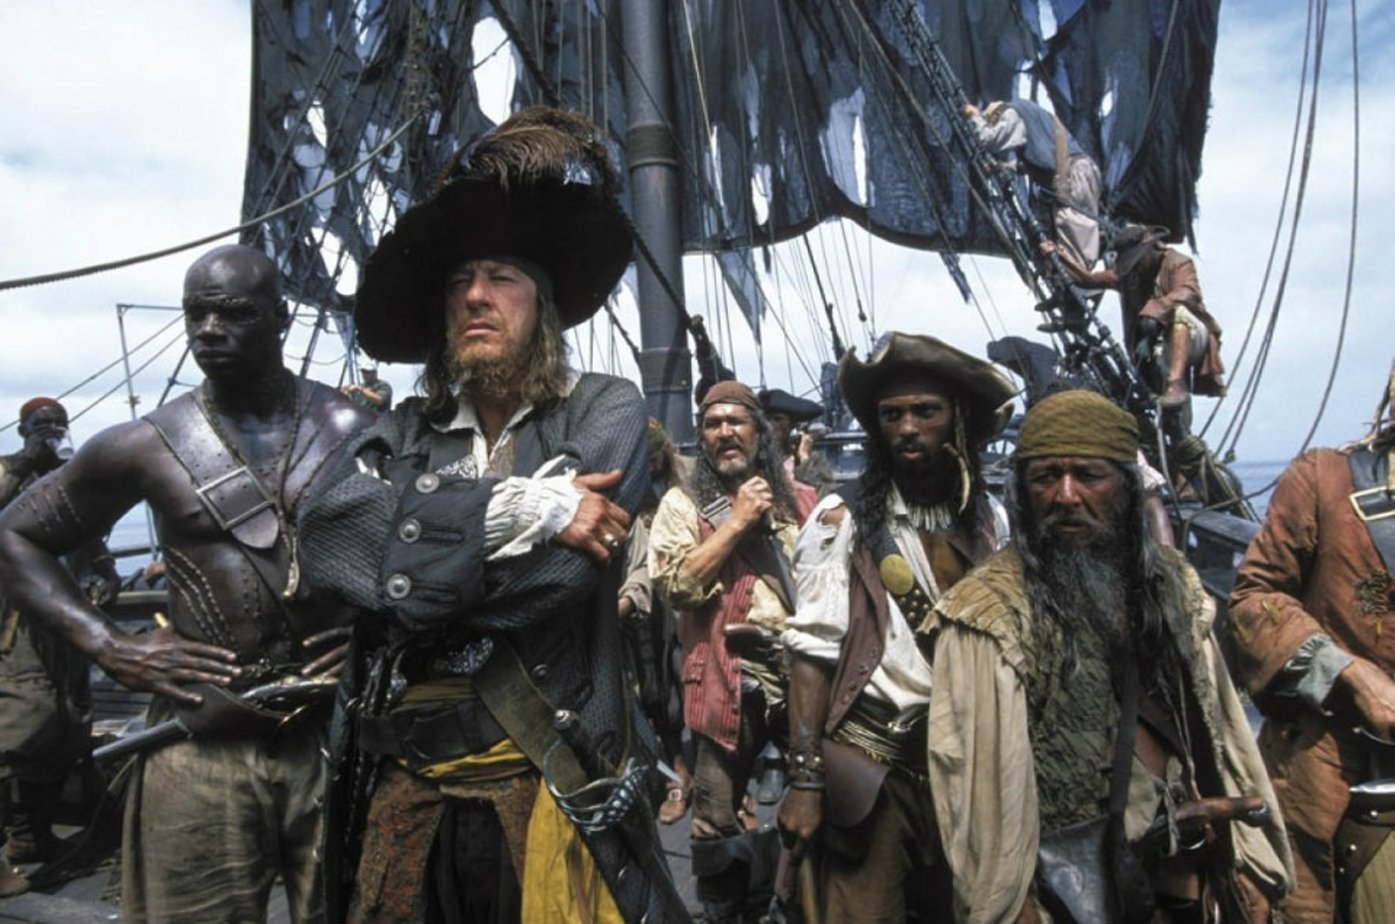 a review of the movie pirates of the caribbean On june 28, 2003, walt disney pictures and jerry bruckheimer films brought the original pirates of the caribbean movie to audiences nationwide director gore verbinski's adaptation of the disneyland ride opened to $135 million, marking the best wednesday opening of the year.